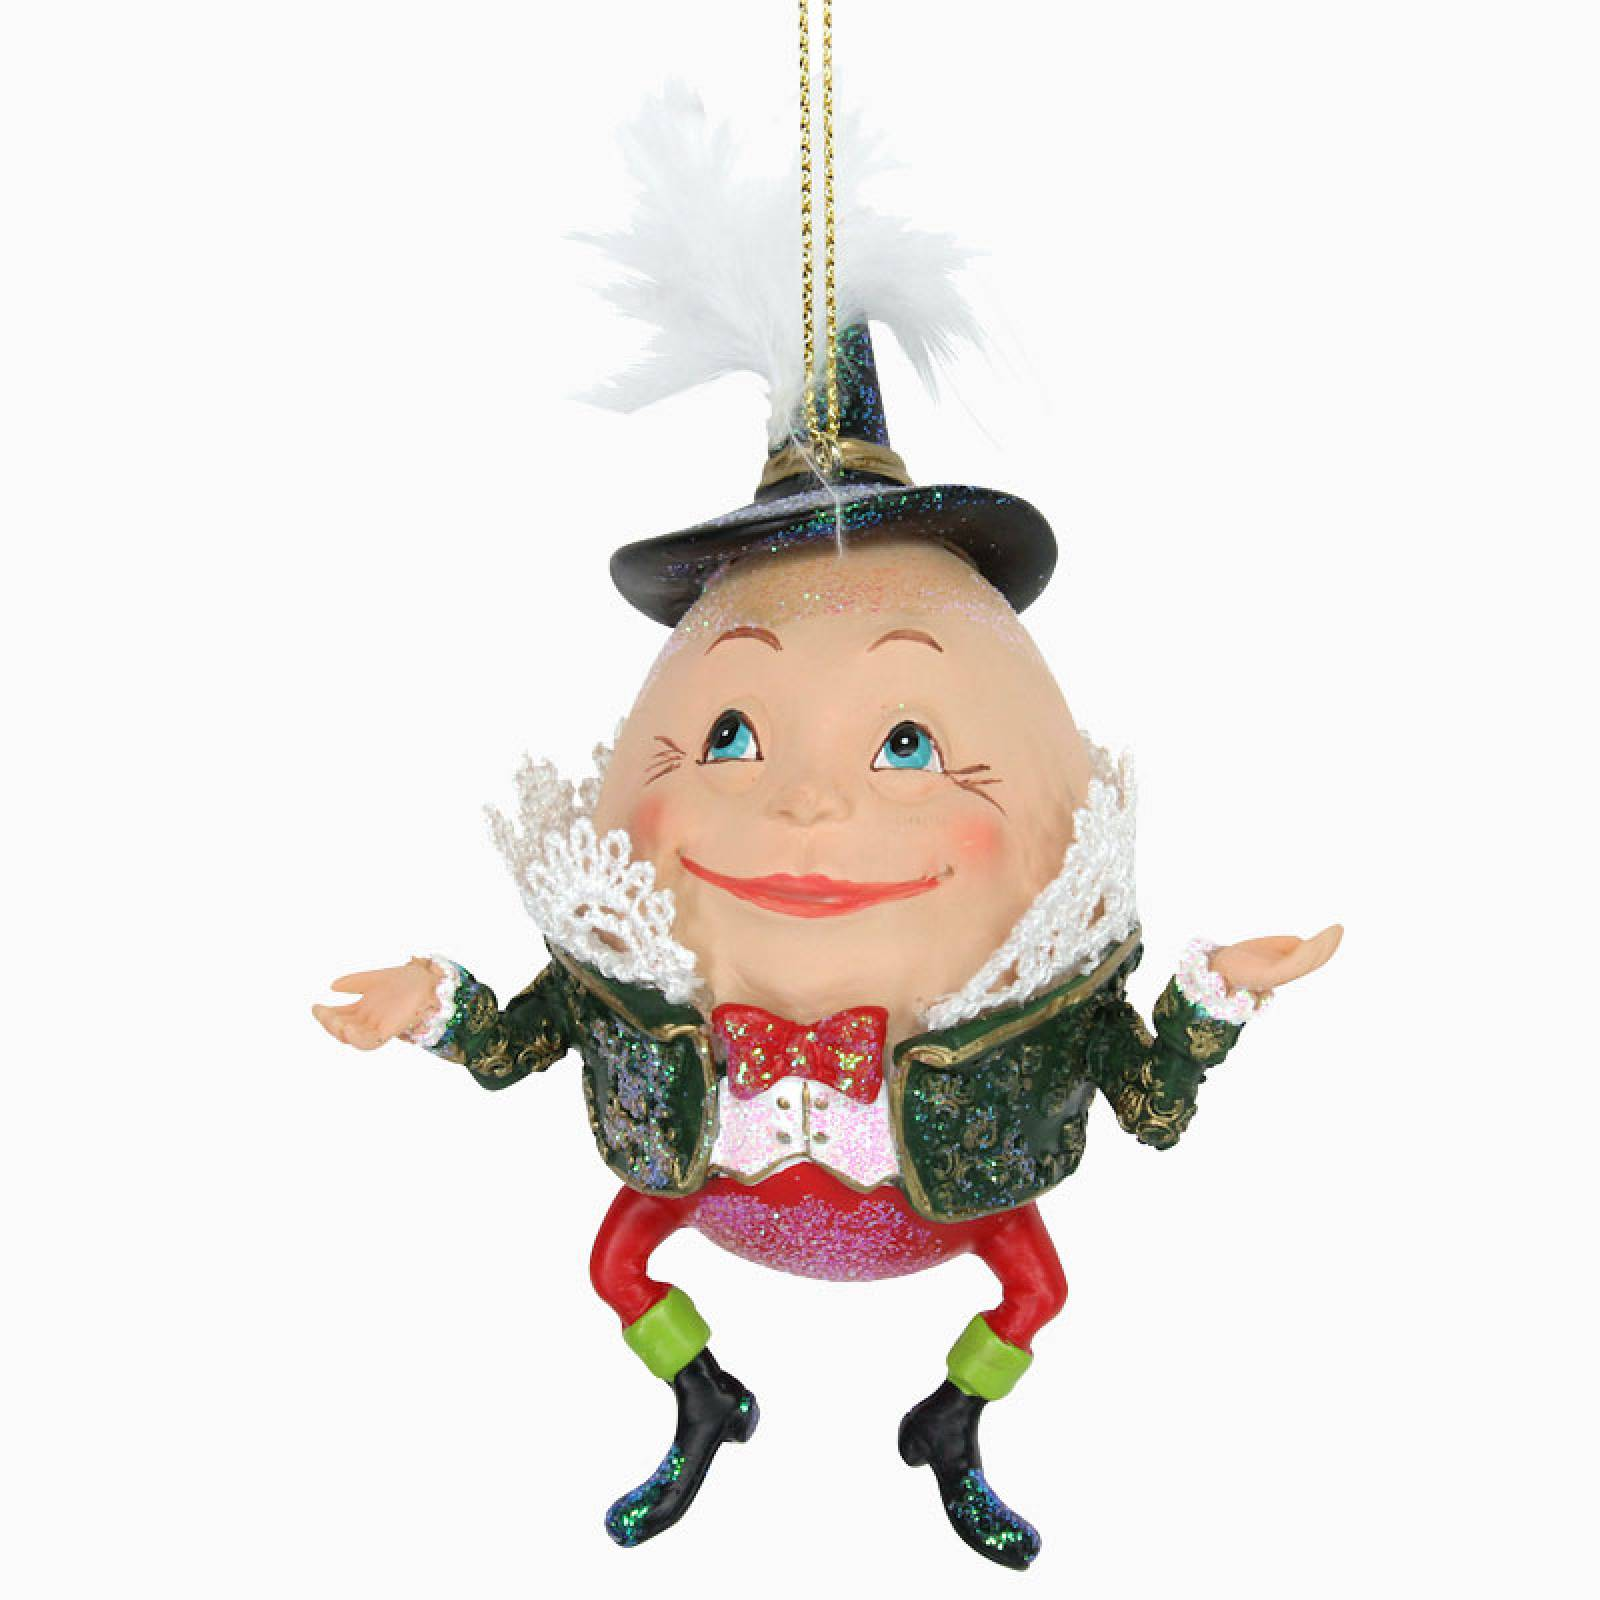 Resin Humpty Dumpty Christmas Decoration